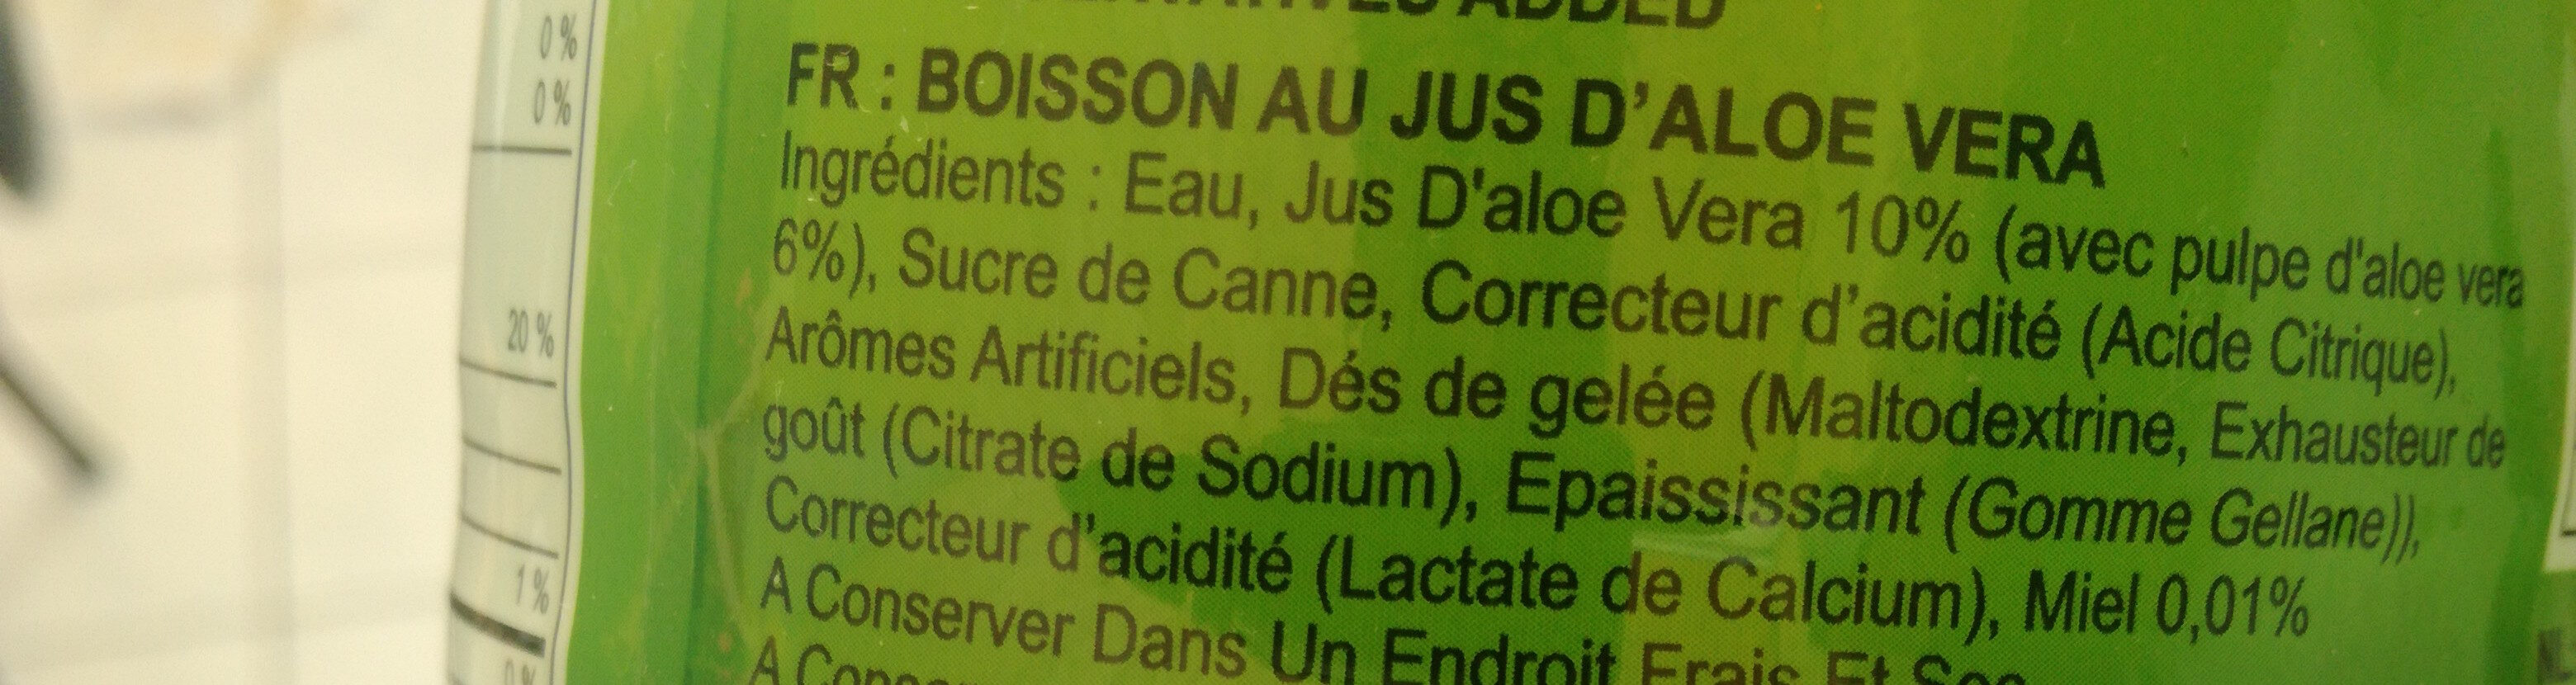 Boisson Jus D'aloe Vera - Ingredients - fr